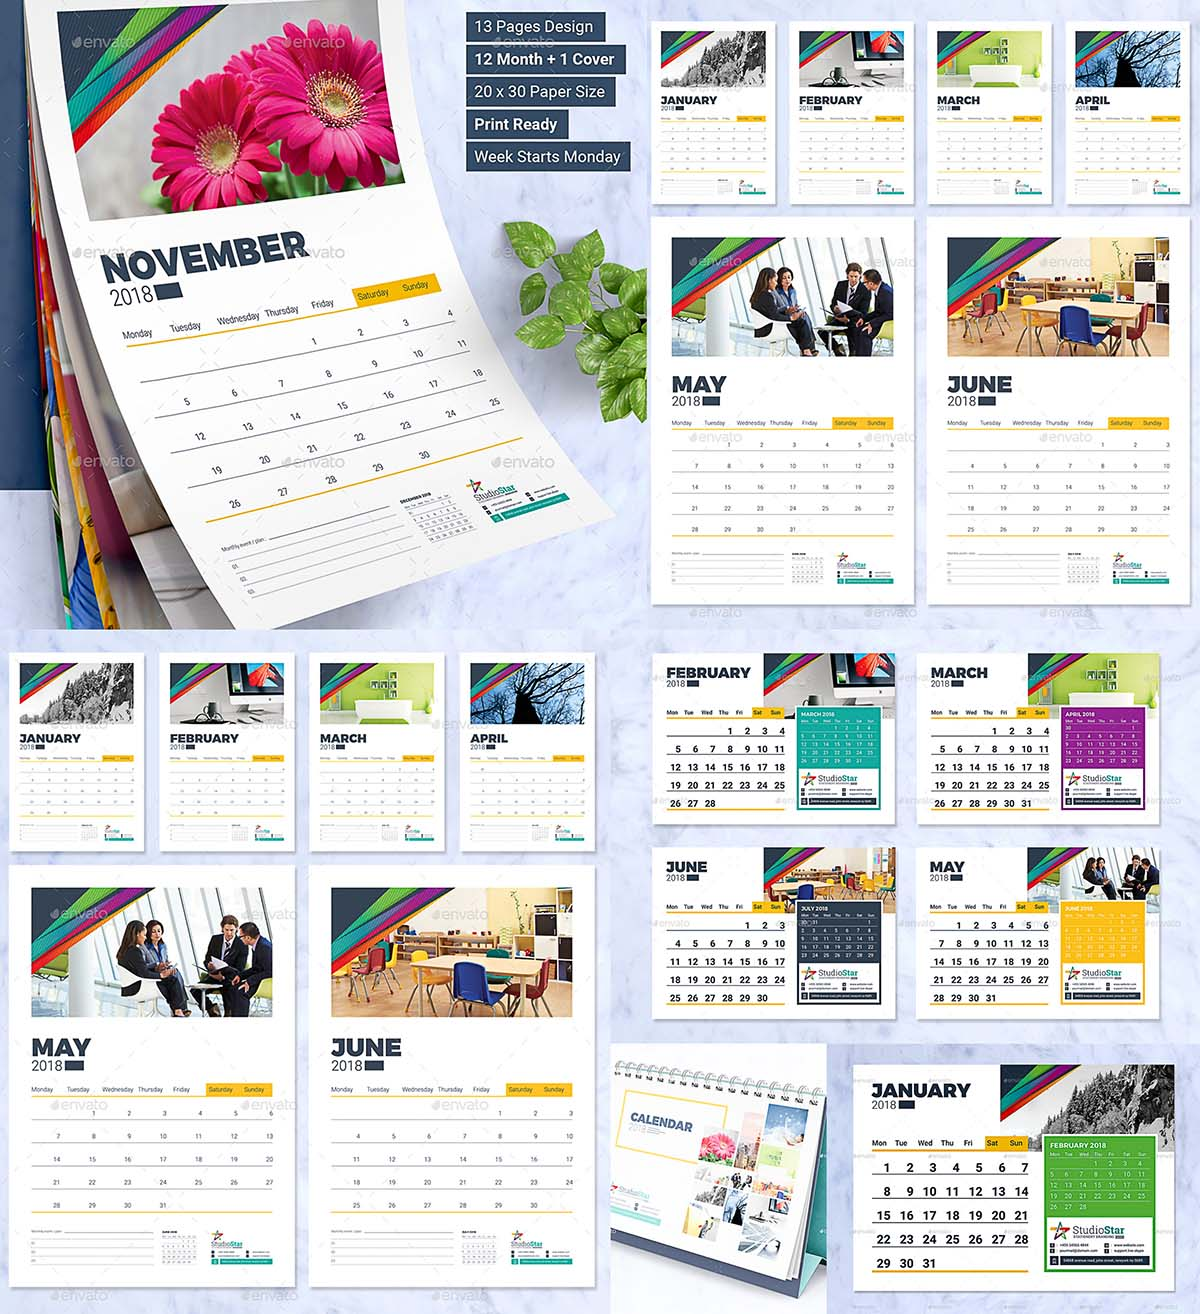 10 Year Calendar Free Month Year Calculator 2018 Calendar Design Template Wall And Desk Free Download